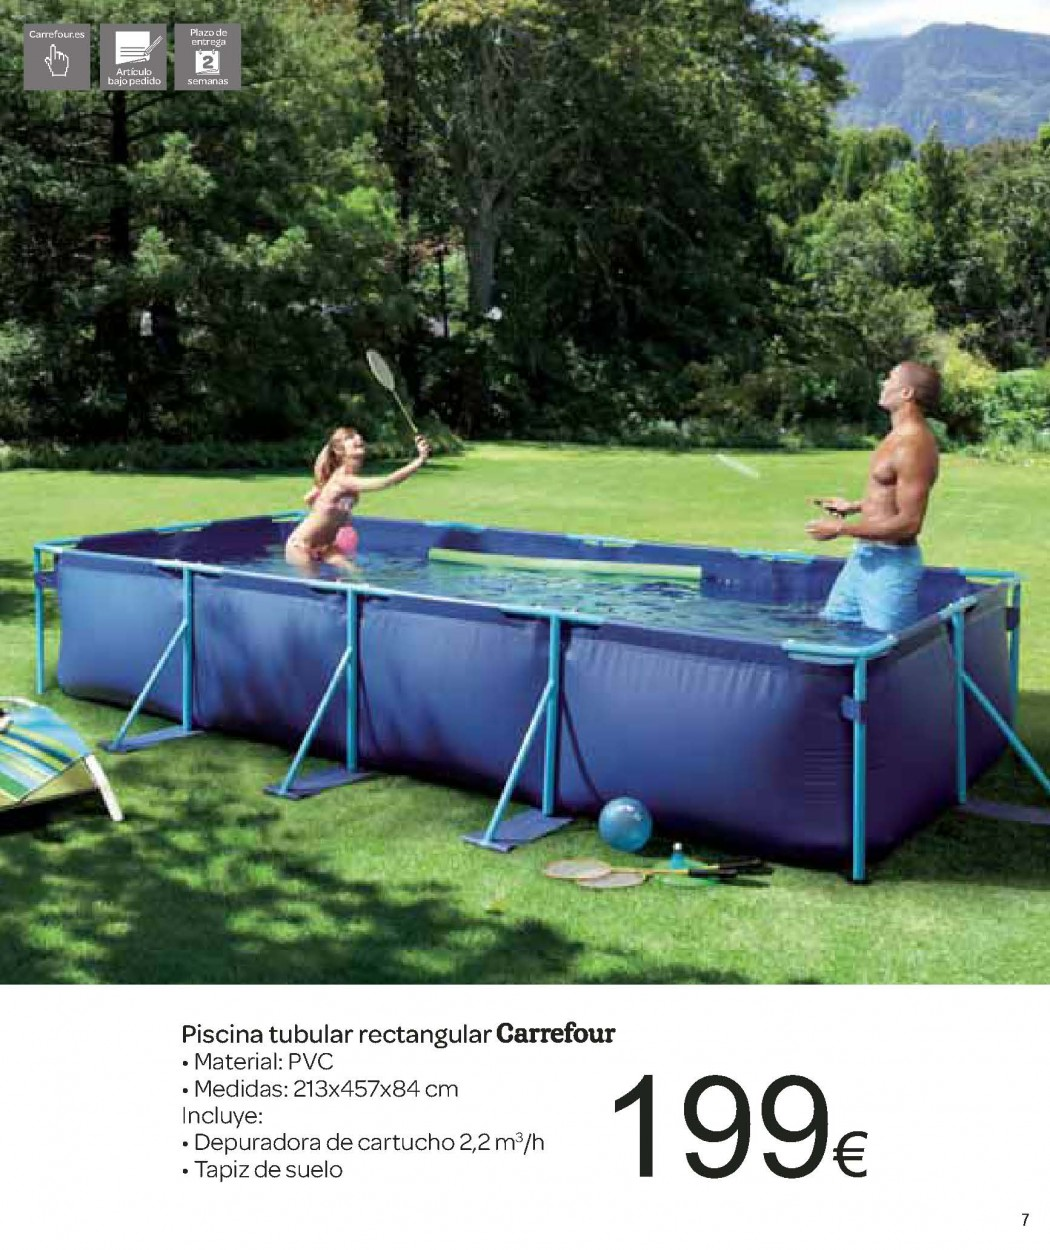 Catalogo carrefour junio 2012 especial piscinas y jardin for Piscinas jardin carrefour